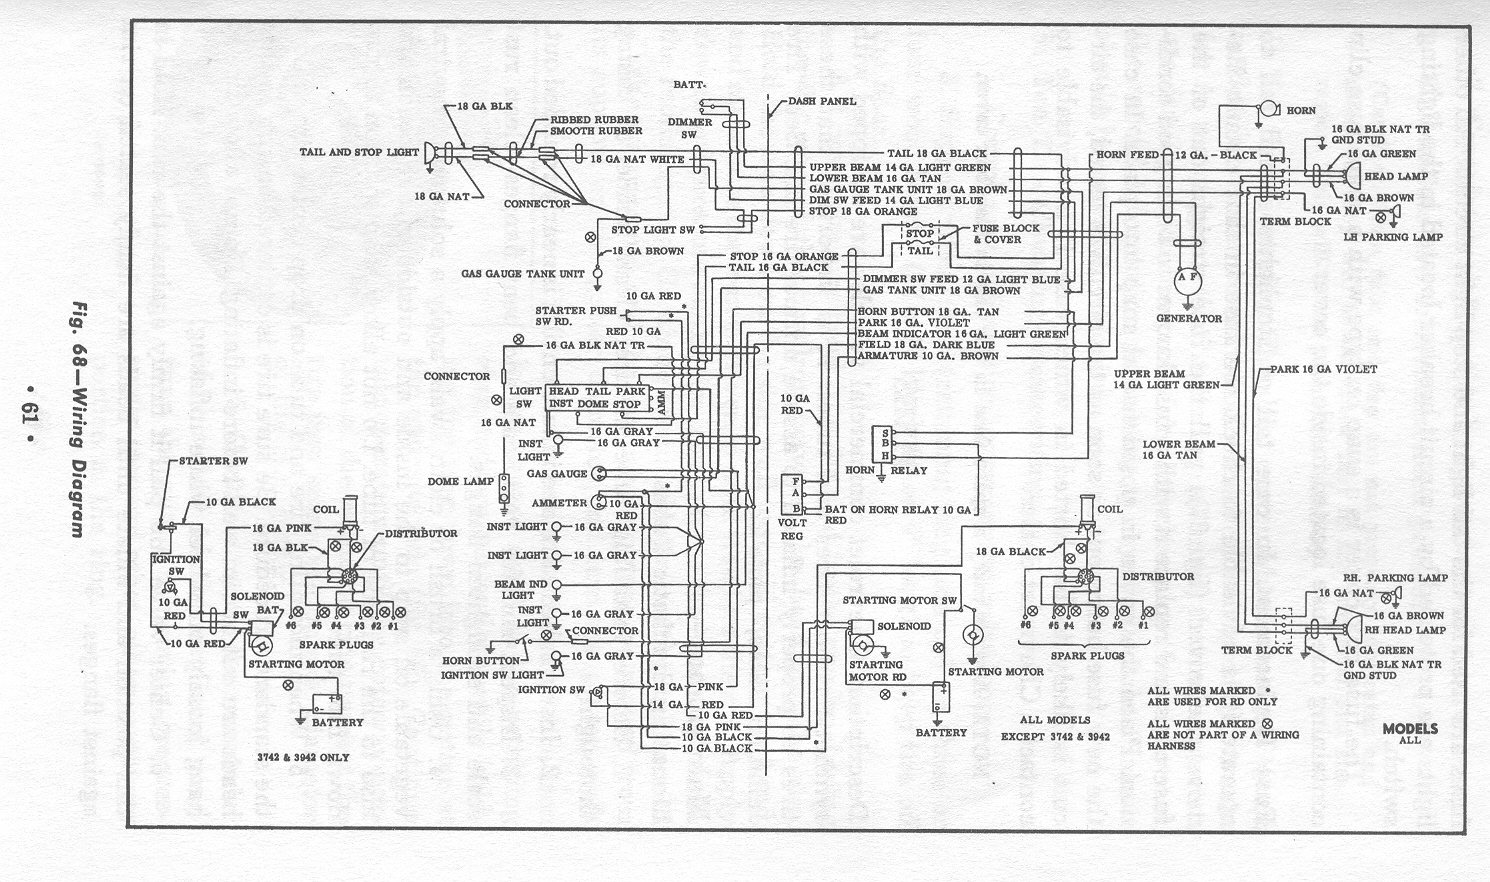 ChevyTruck 1954OperatorsManual_wiring_61 chevy truck 1954 operator's manual index 1954 chevy truck wiring diagram at n-0.co